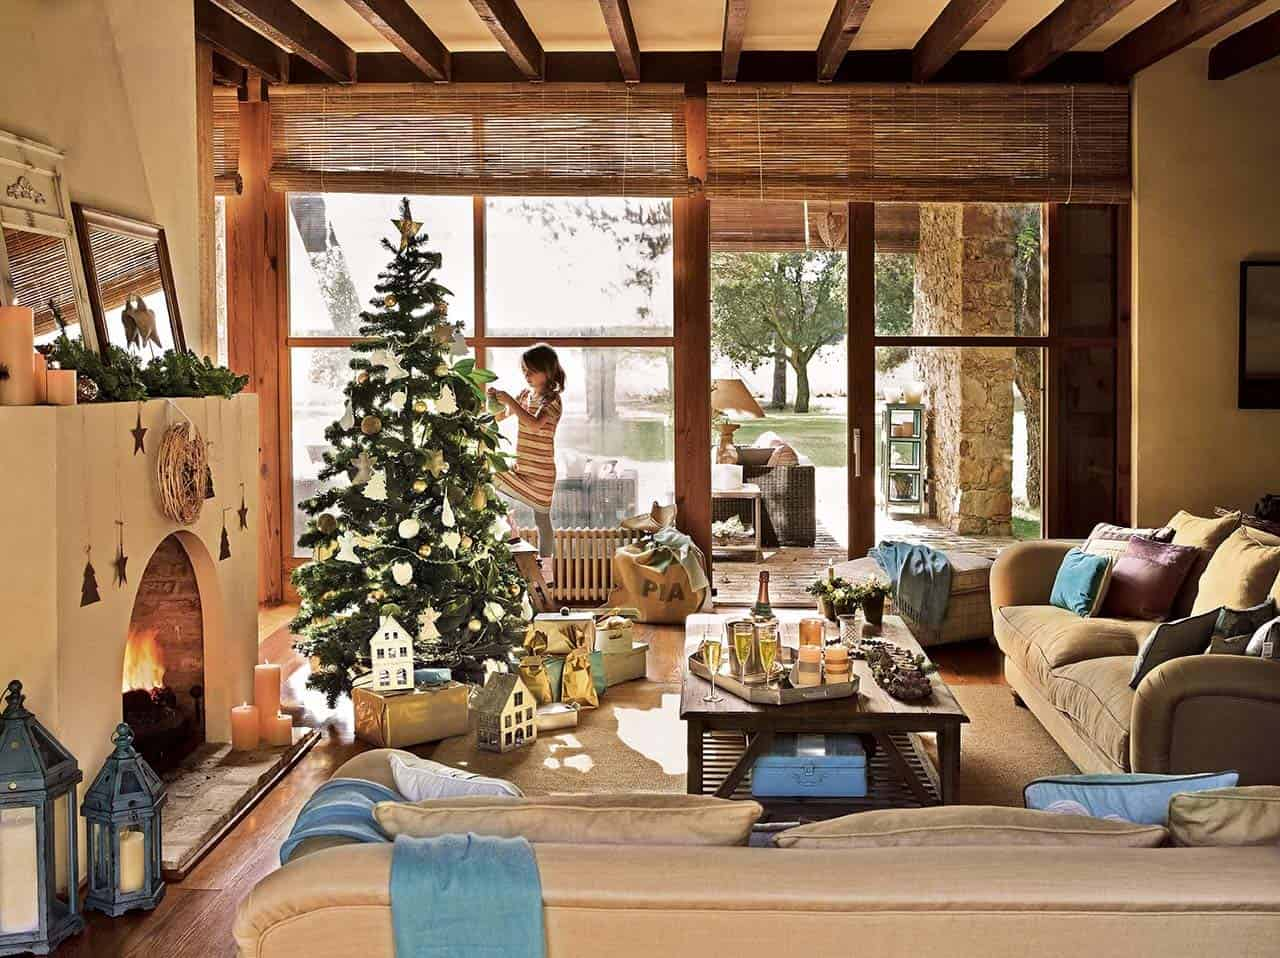 Casas Decoradas De Navidad Interiores Spanish Country House Adorned With Natural Christmas